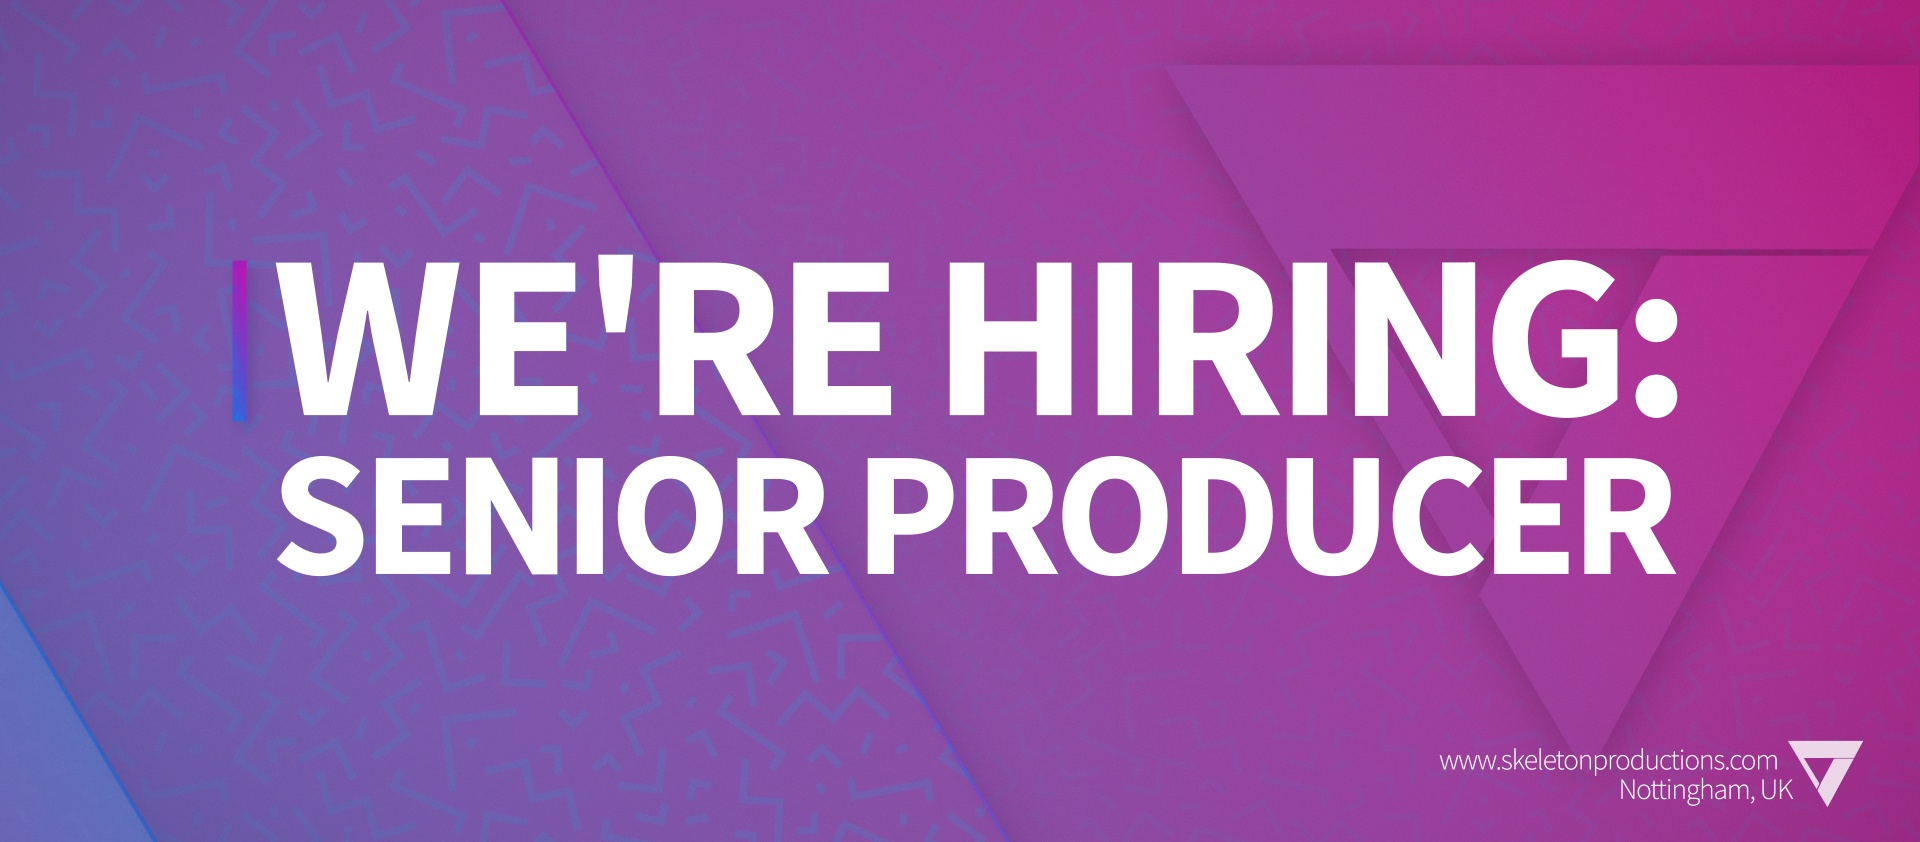 We're Hiring: Senior Producer featured image